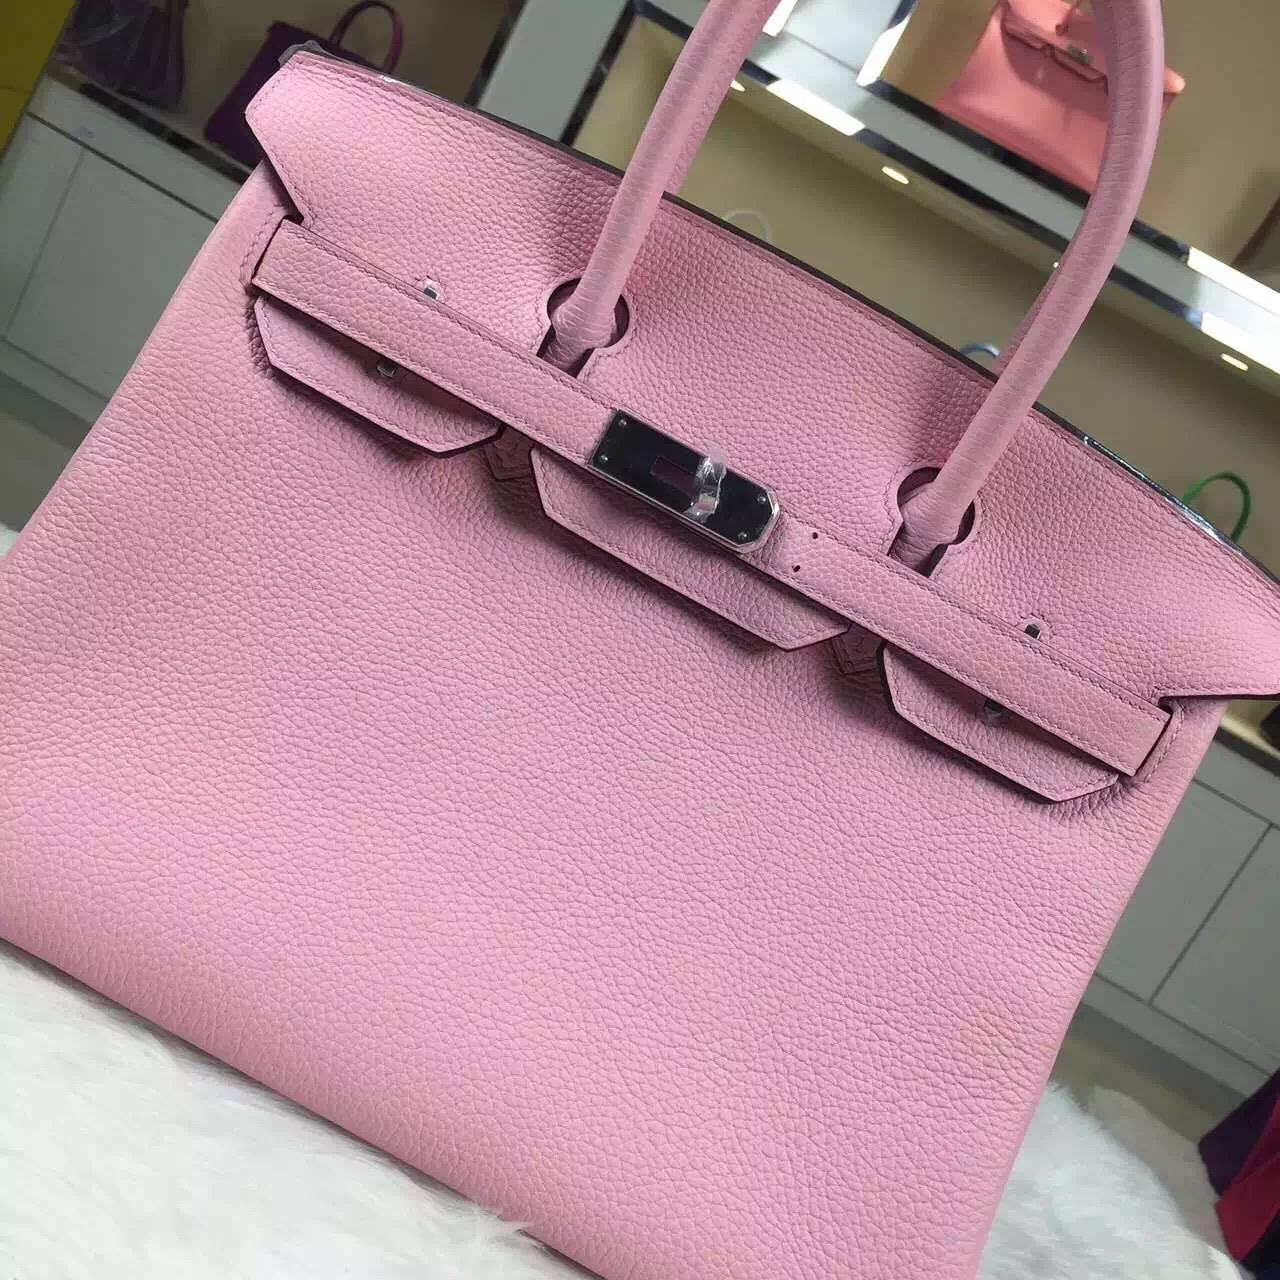 New Pretty Hermes Vip Customized 3Q Rose Sakura Togo Leather Birkin Handbag 30CM